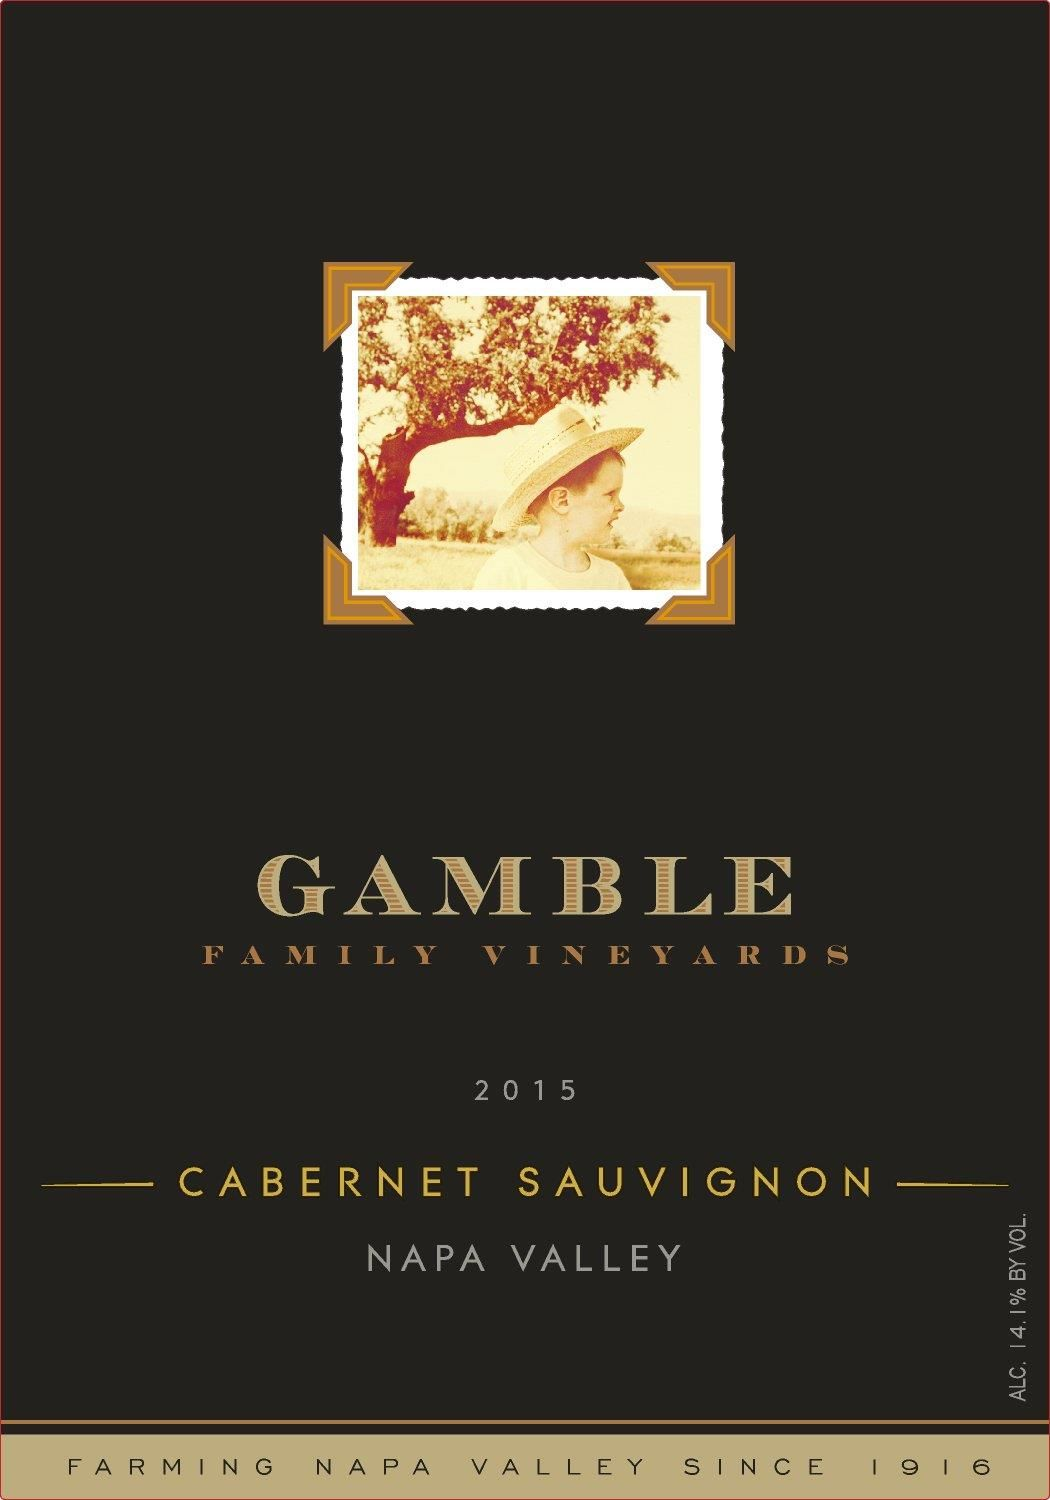 Gamble Family Vineyards Napa Valley Cabernet Sauvignon 2015 Front Label